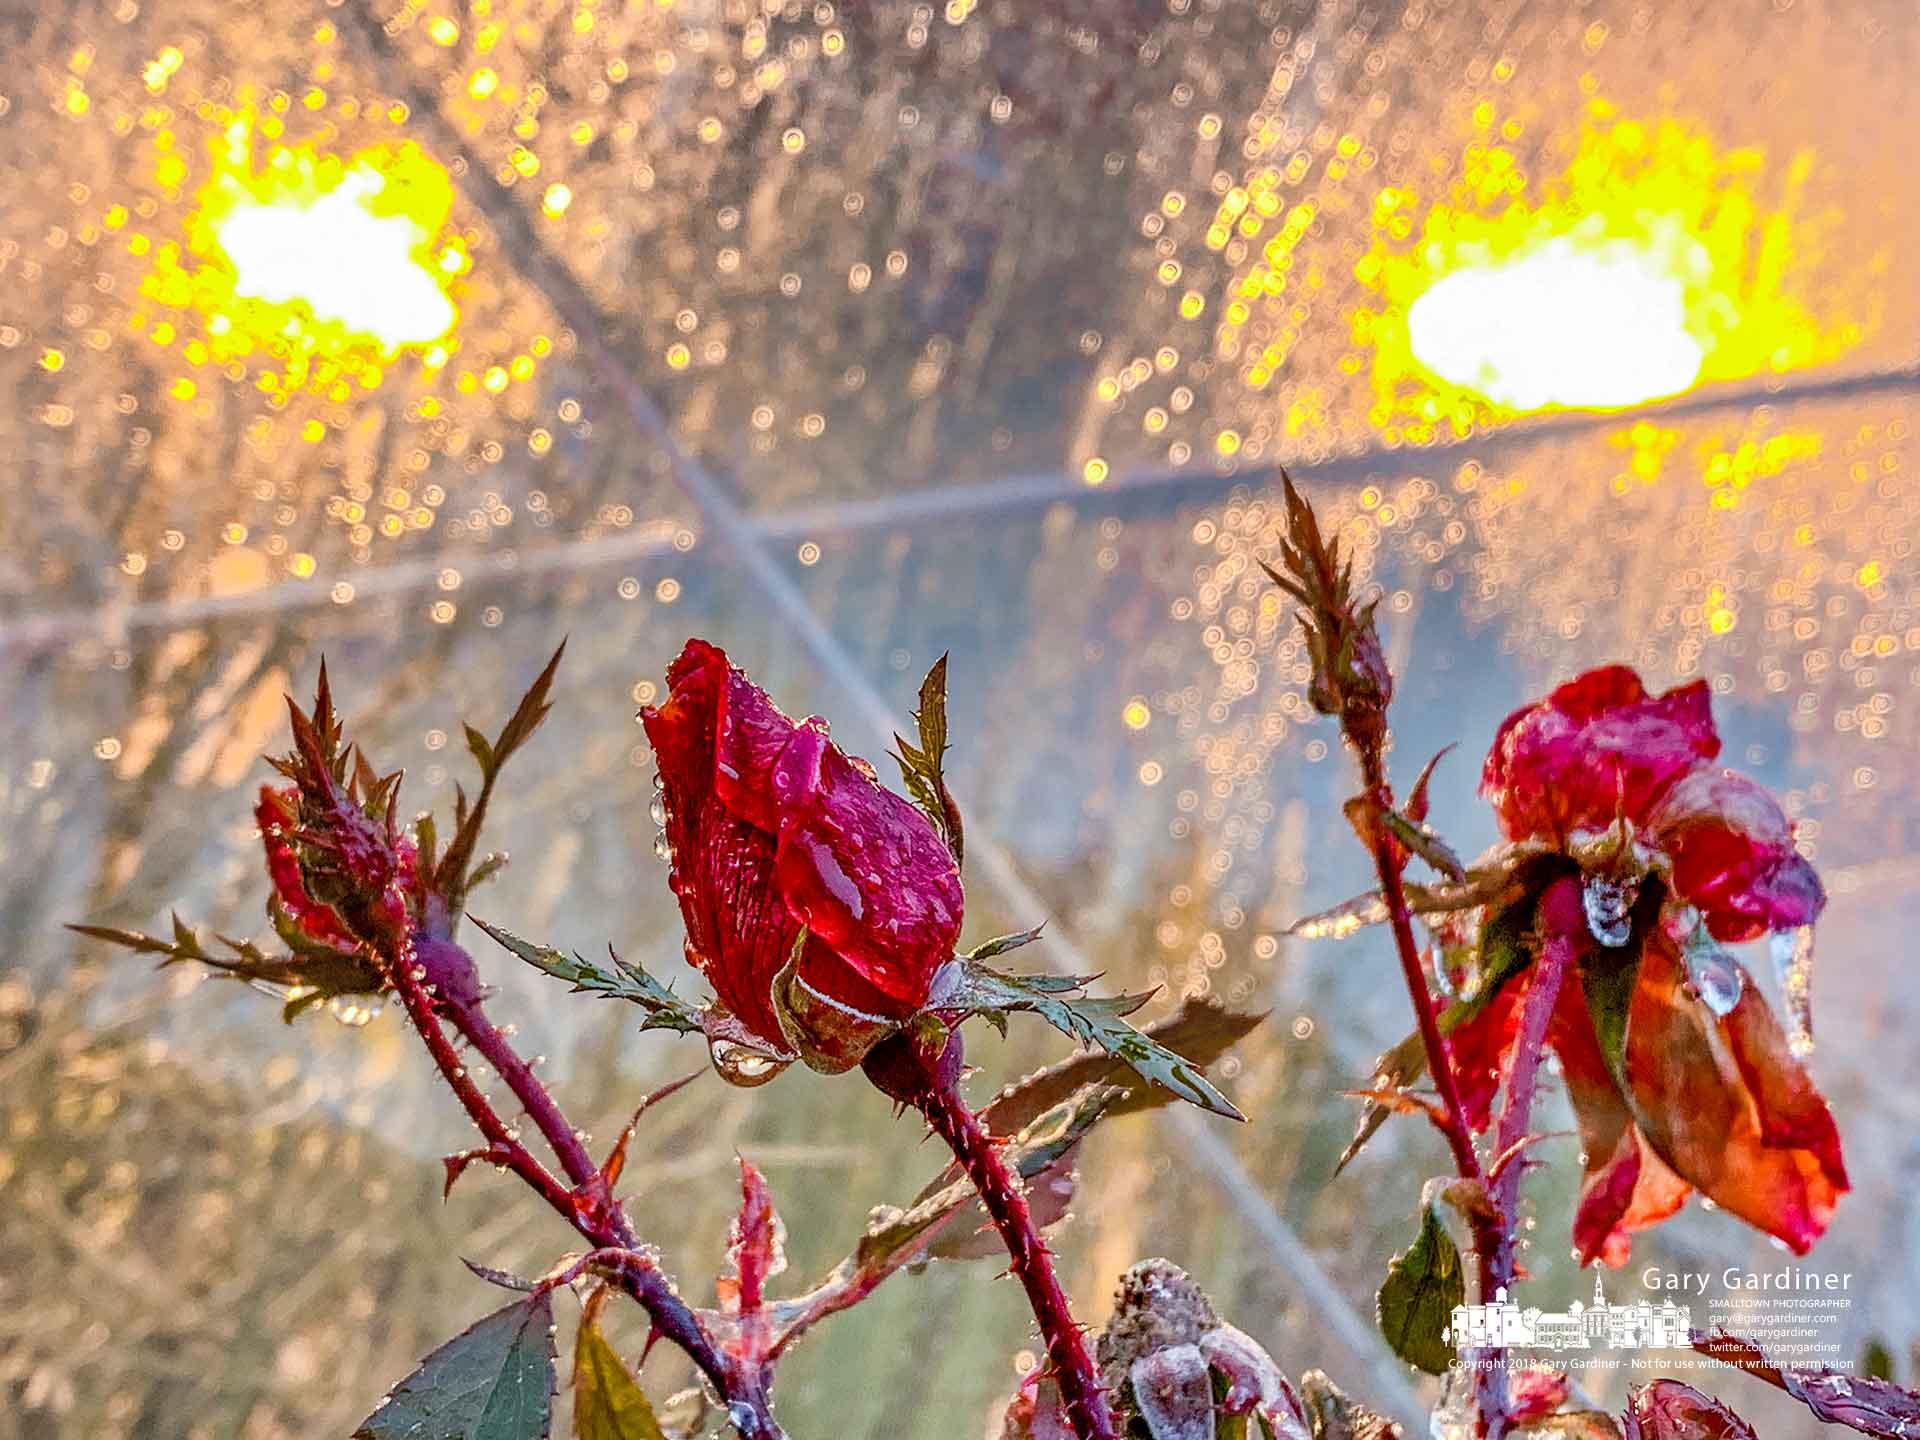 Roses wear a coating of ice and rain just outside the Otterbein Science Center building's greenhouse after an overnight storm brought freezing rain to the city. My Final Photo for Nov. 15, 2018.